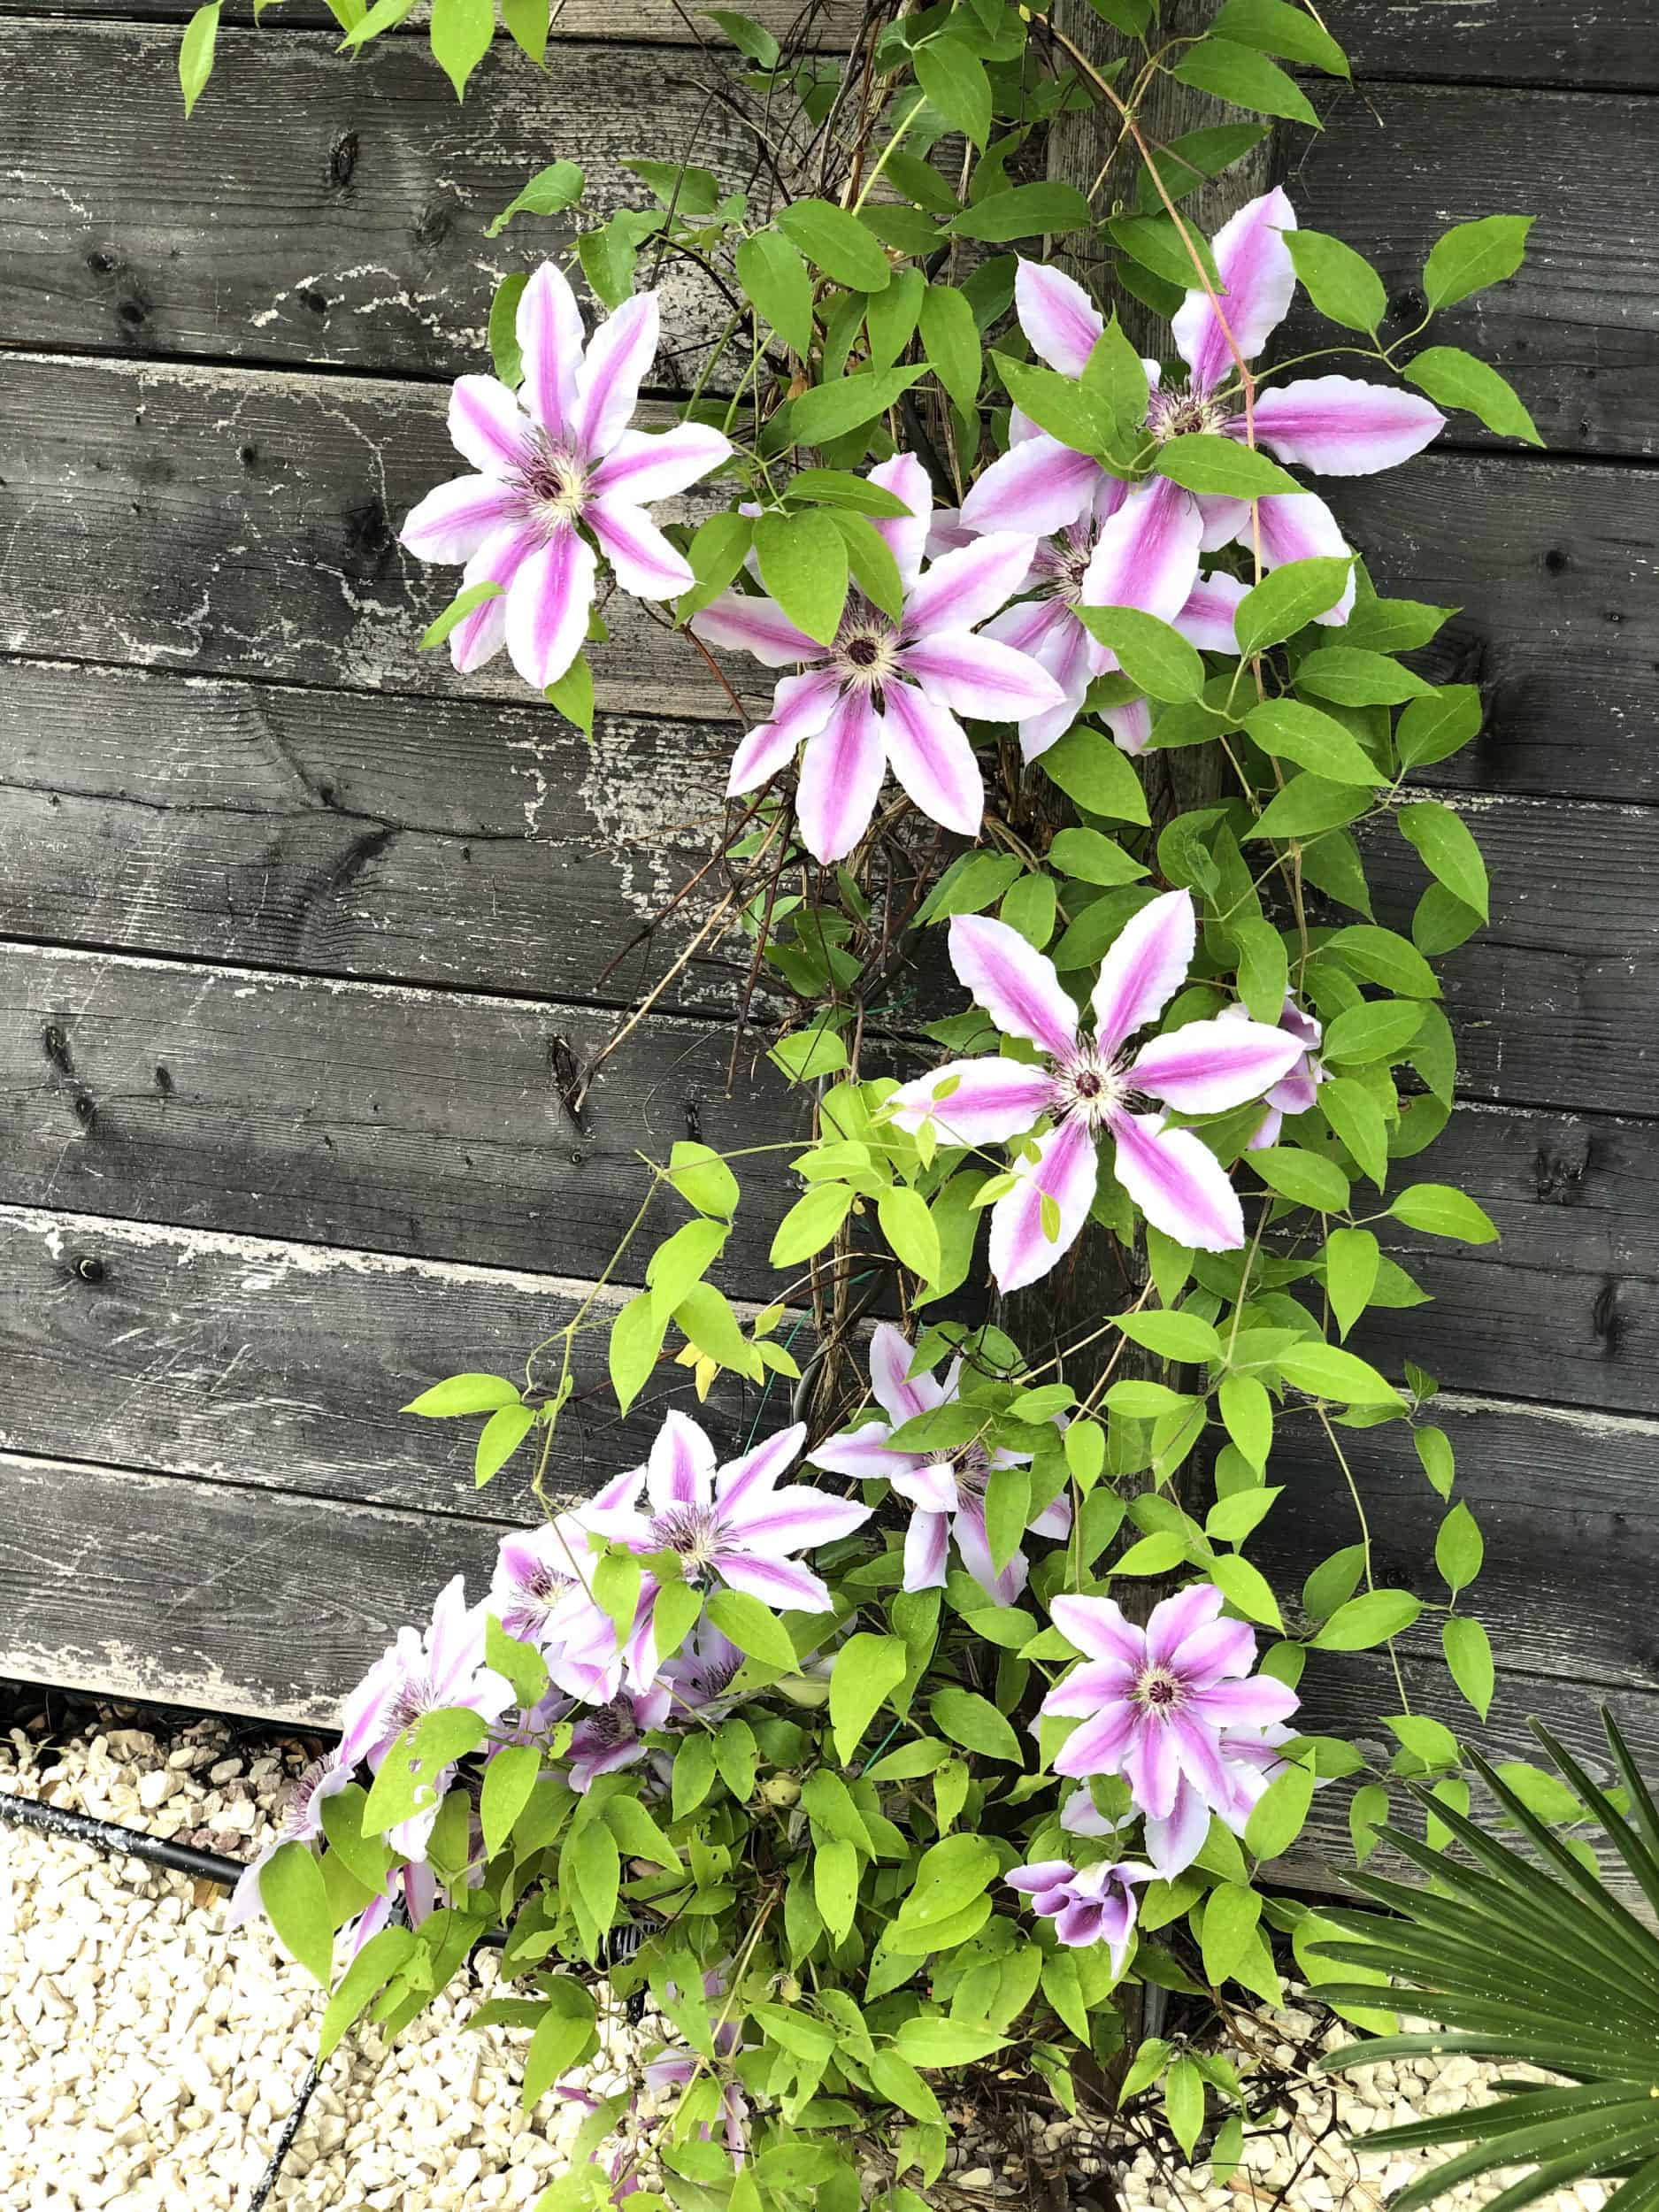 20-05-Clematis 'Nelly Moser' 01